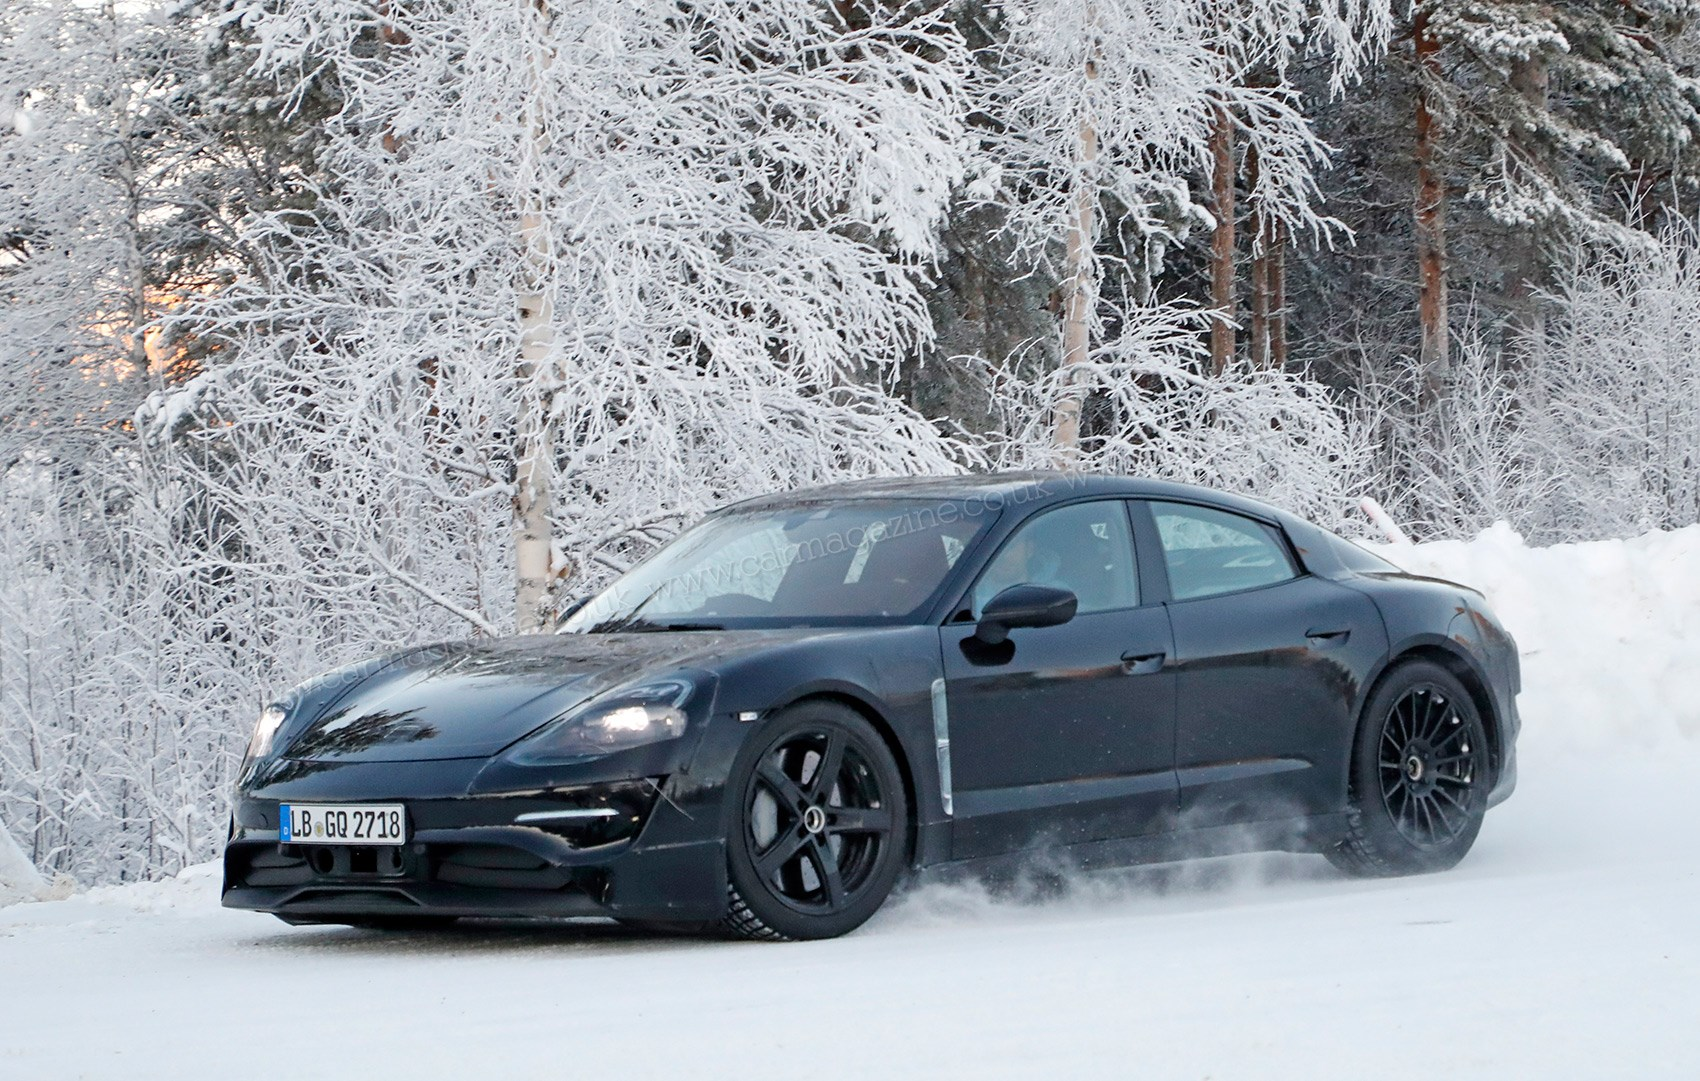 Huge Brake Discs Visible In This Spy Photo Of The 2019 Porsche Mission E Electric Car Winter Testing